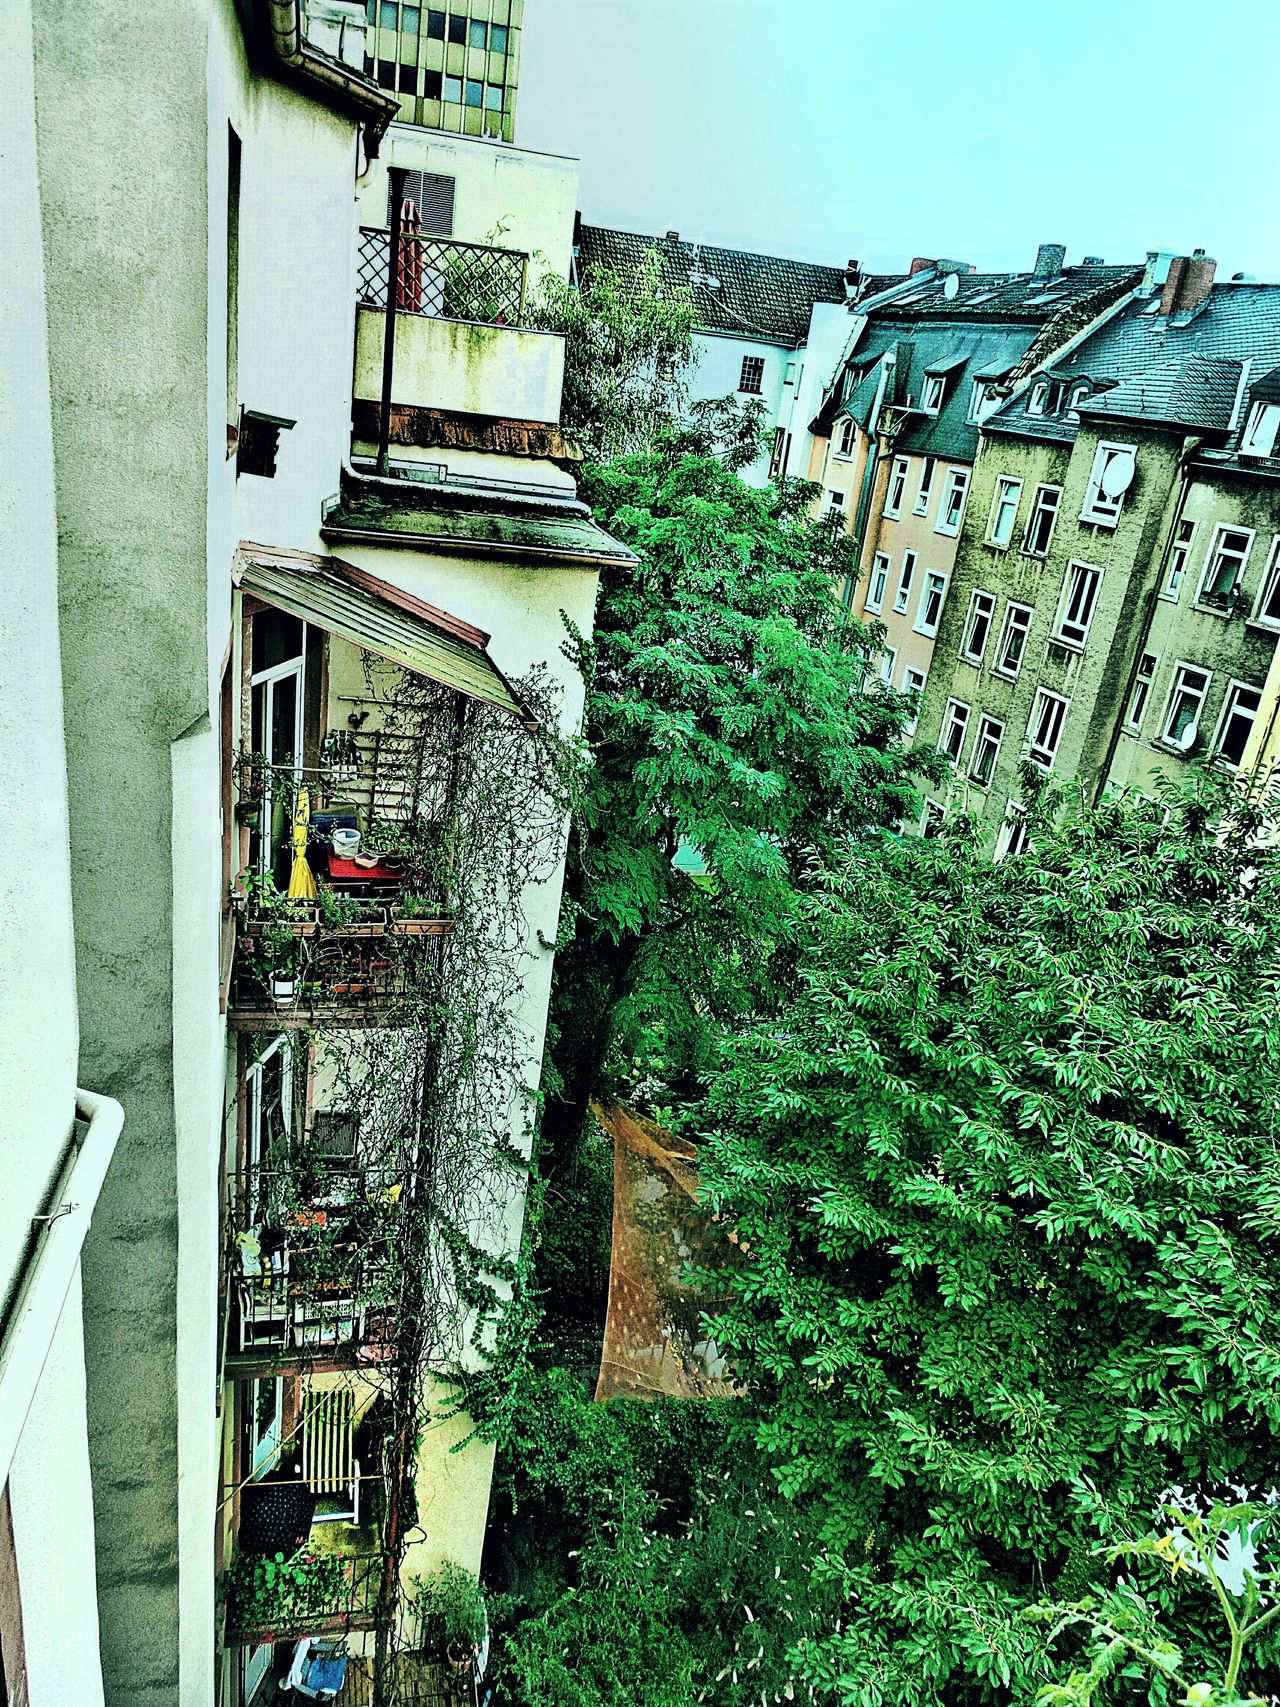 Idyllic Backyard Green Island In The City Urban Architecture Urban Lifestyle Cosy Balconies In The Foreground Green Plants Hidden Gems  Frankfurt City  Germany🇩🇪 Home Is Where The Art Is Hidden Gem